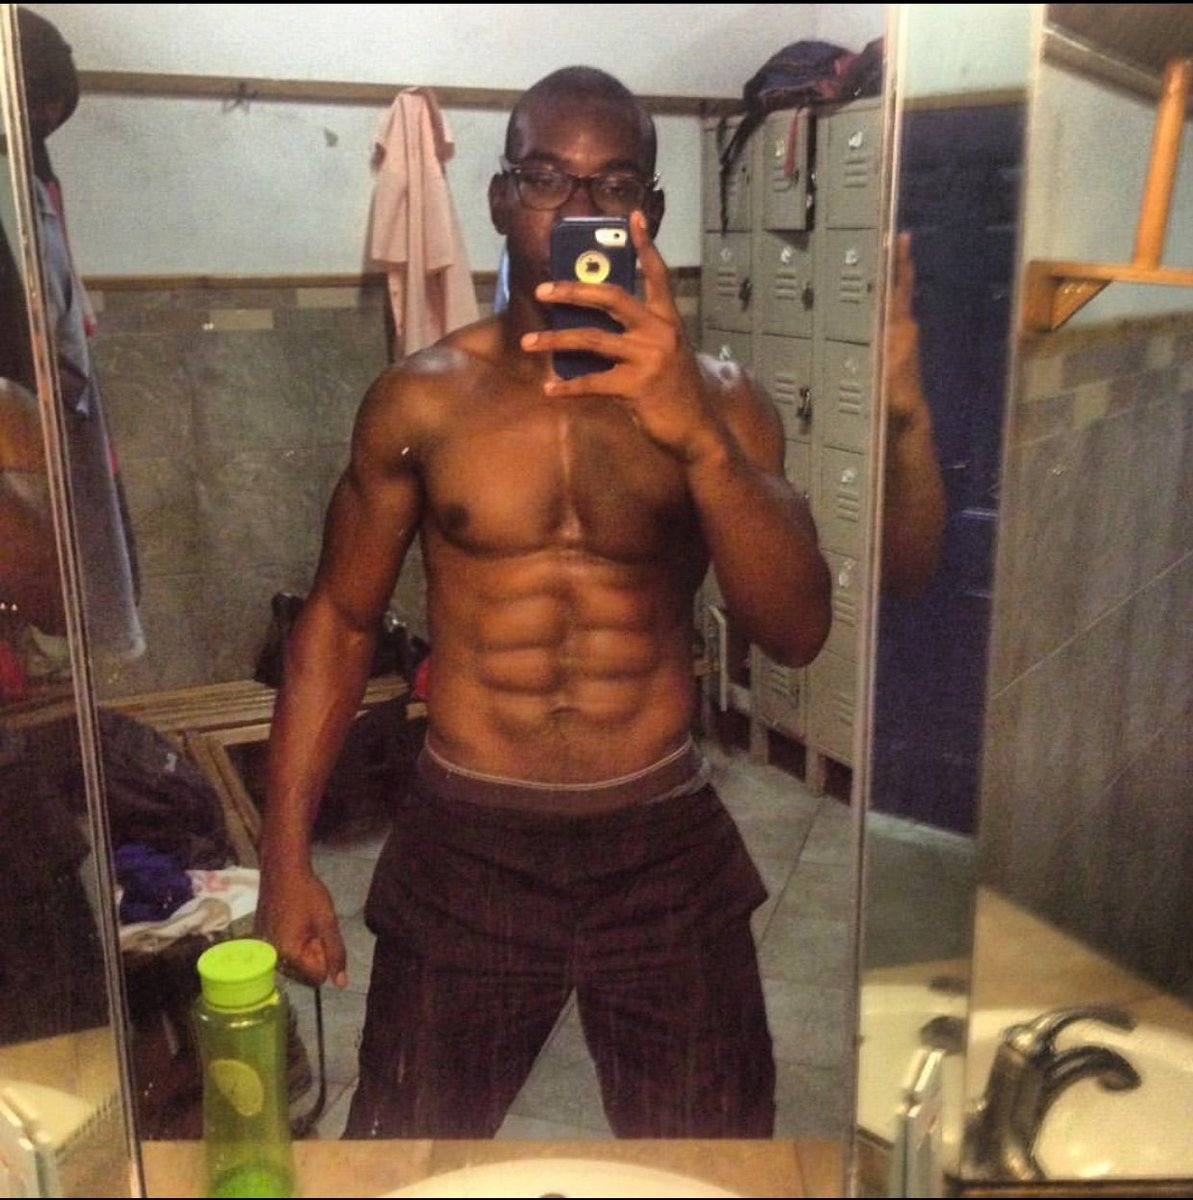 #tbt getting back my abs by January